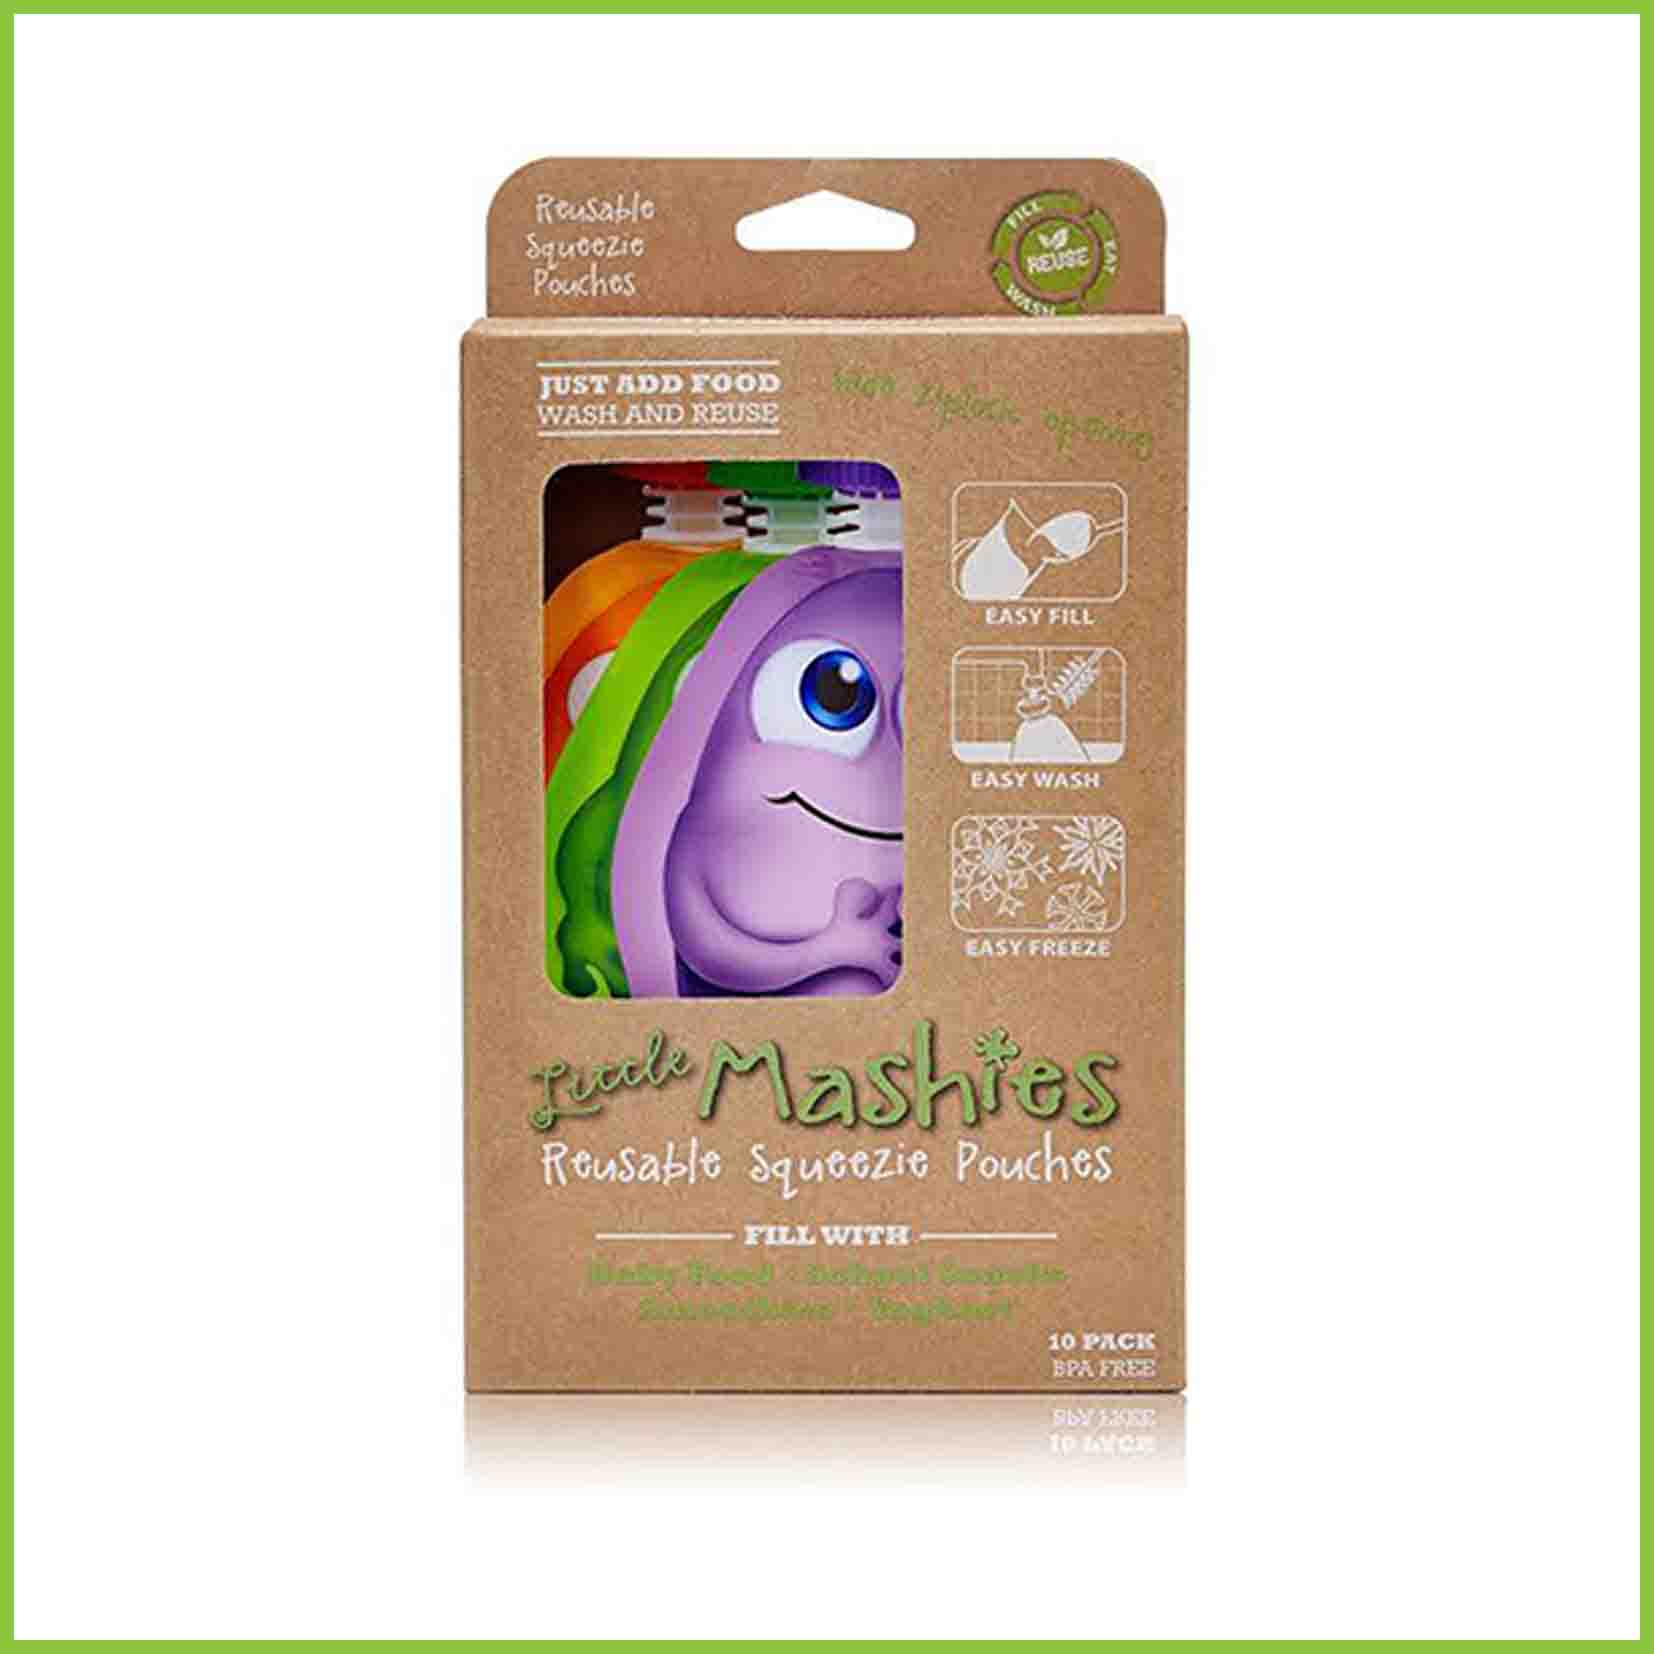 A 10 pack of Little Mashies reusable food pouches in it's cardboard packaging.